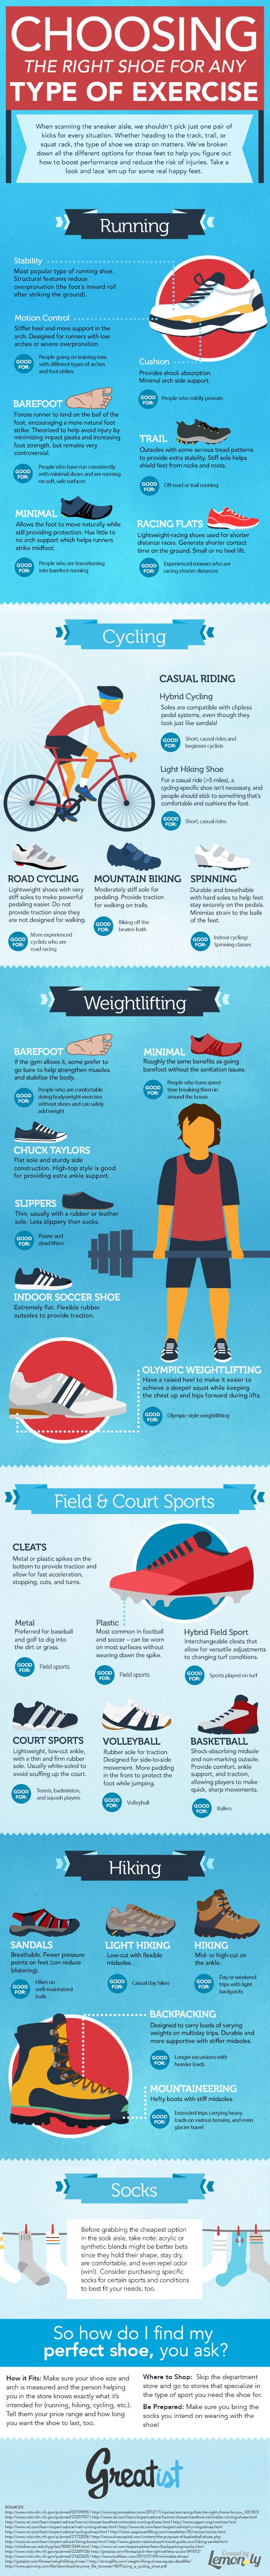 Guide to choosing the right type of shoe for any type of exercising, from running to cycling, weightlifting to hiking.